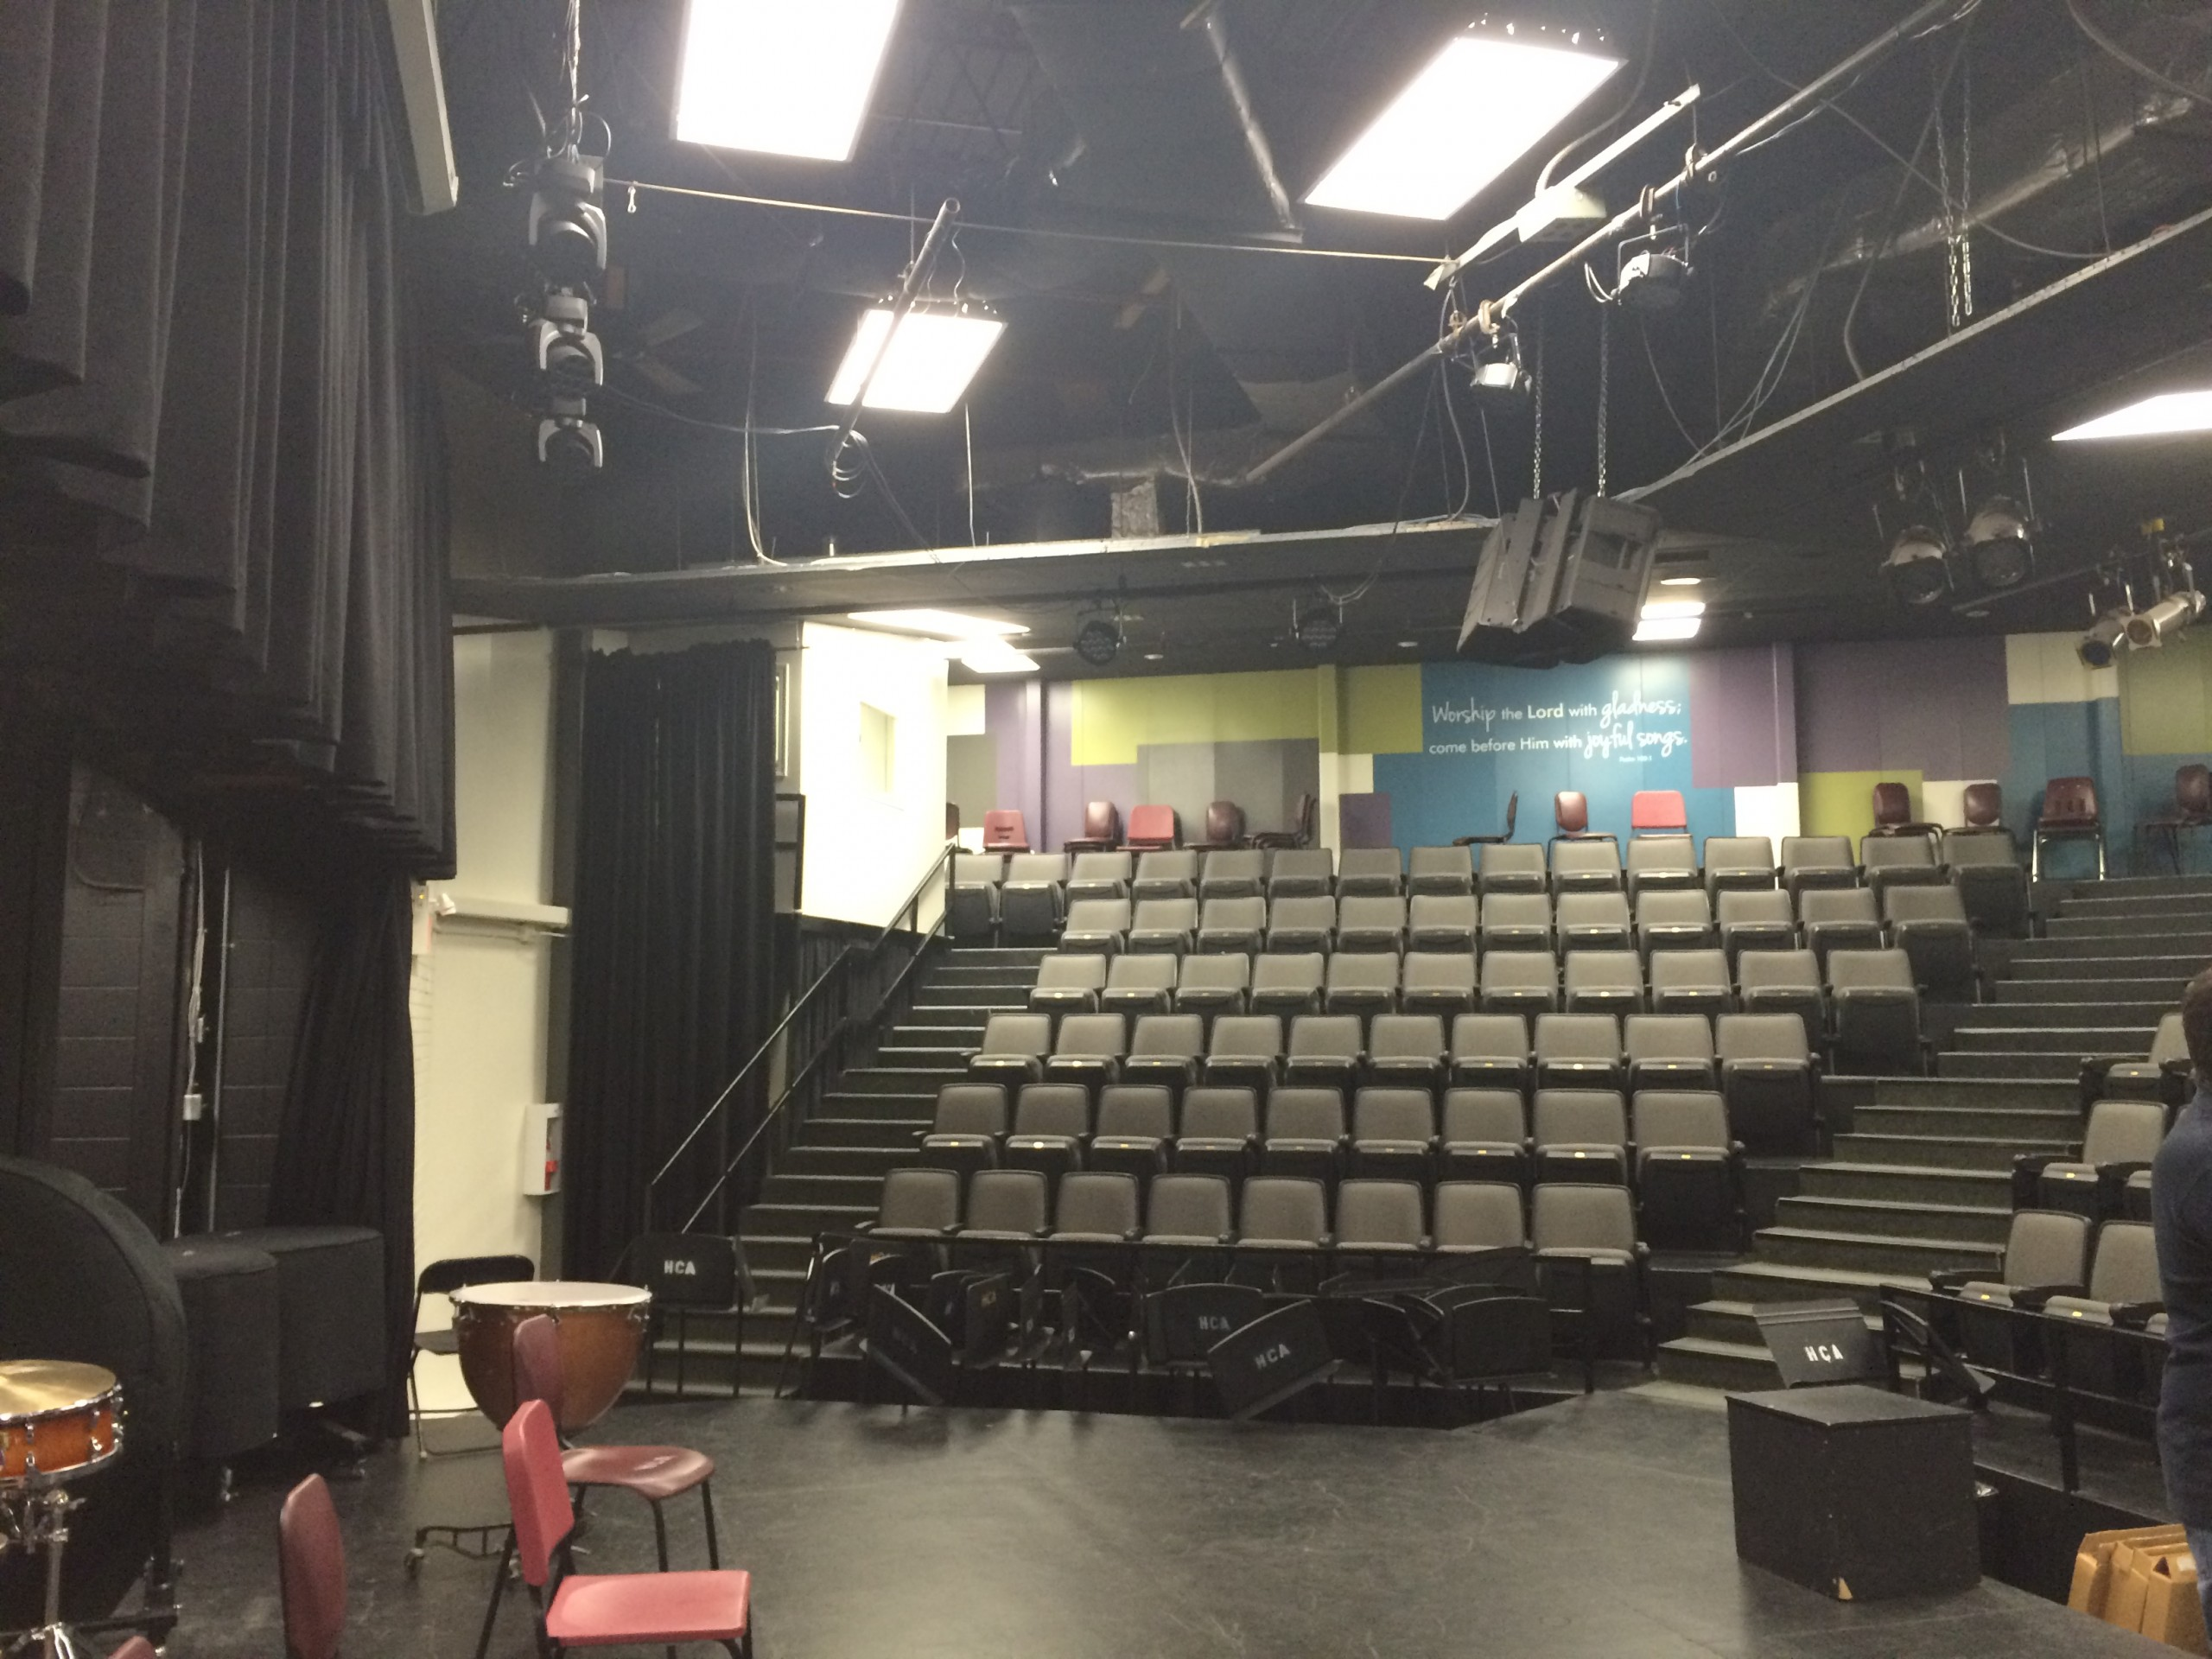 Interior of school theatre room and chapel from the stage, showing risers of seating in the background, lights and sound rigging overhead and colourful accent graphics on back wall.